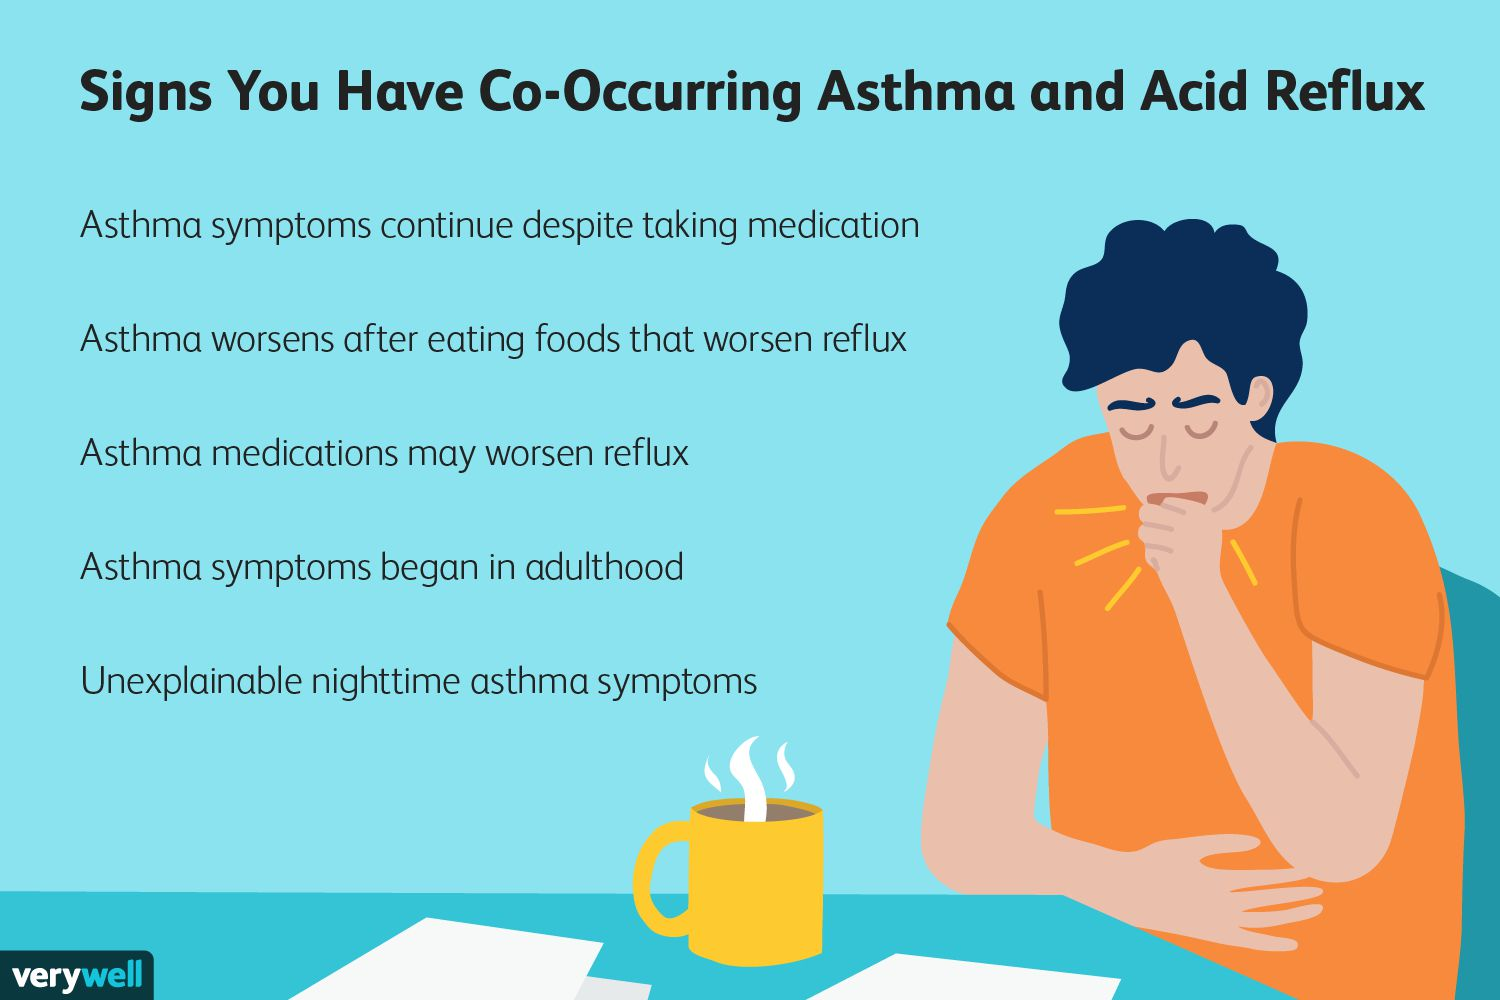 Signs You Have Co-Occuring Asthma and Acid Reflux